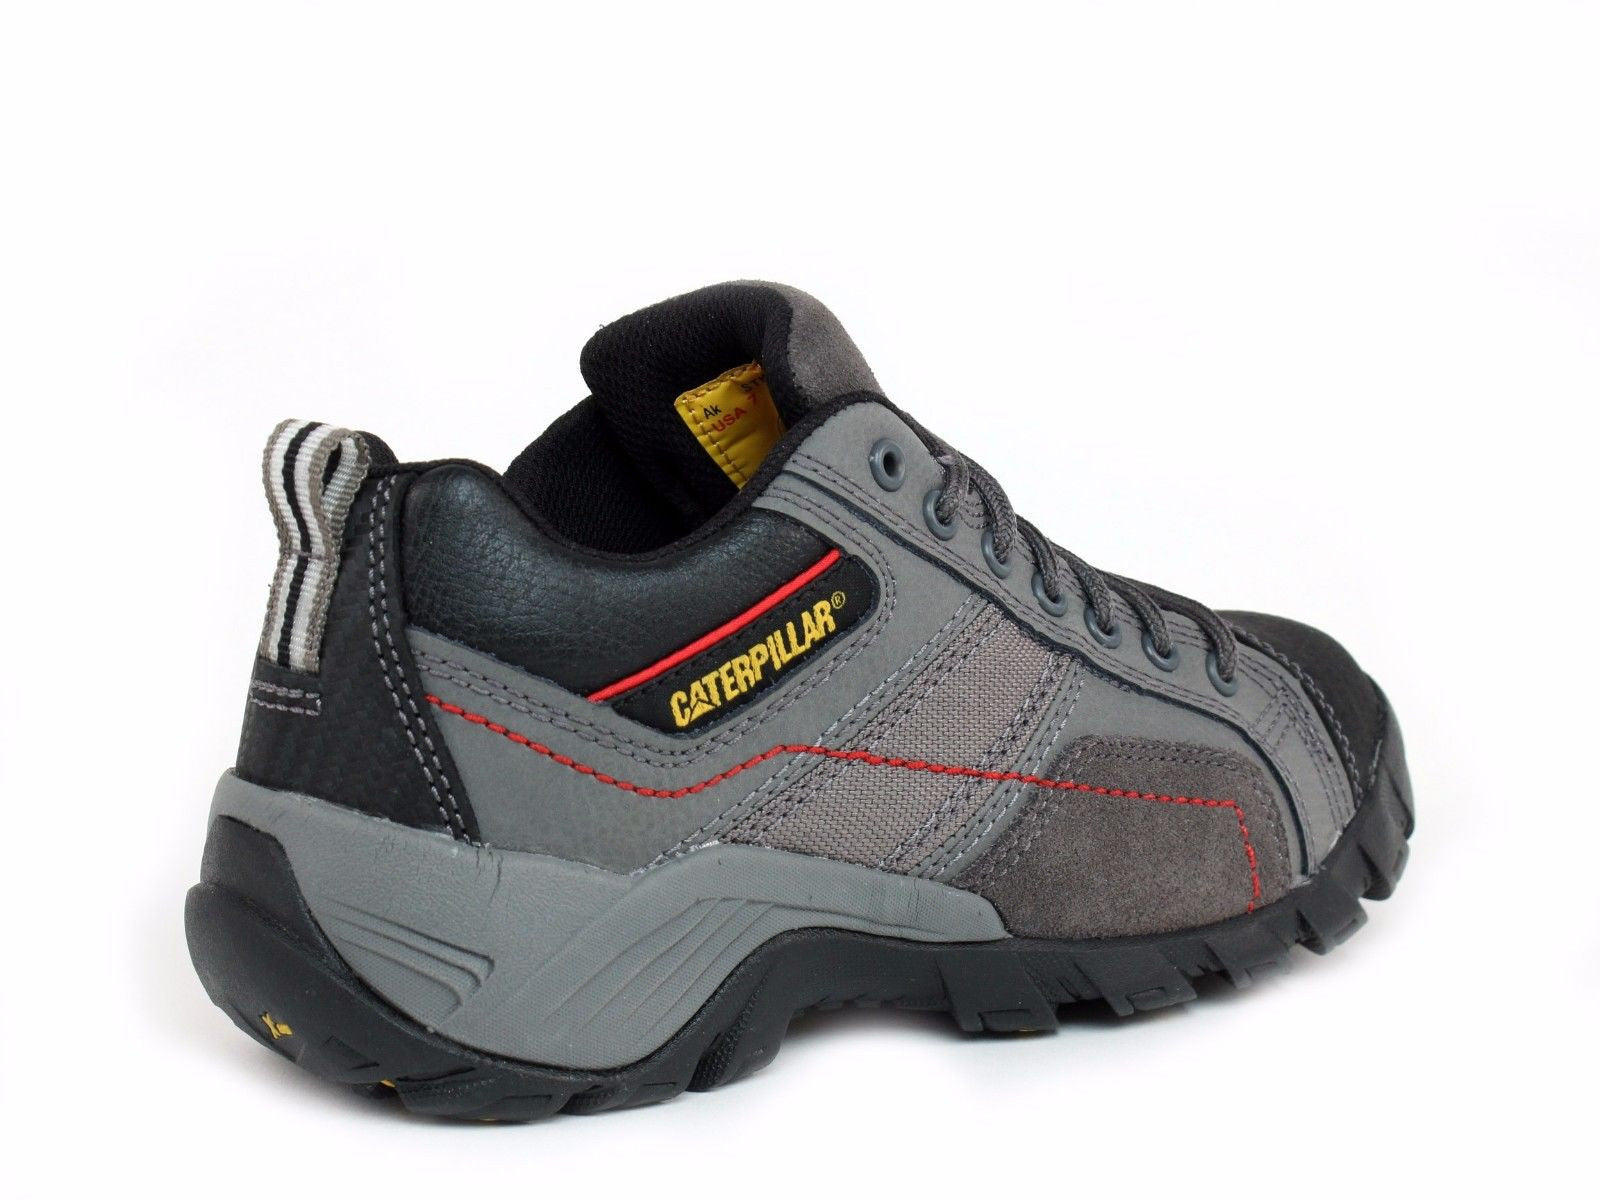 Caterpillar Argon Comp Toe Eh Slip Resistant Mens Work Safety Shoes